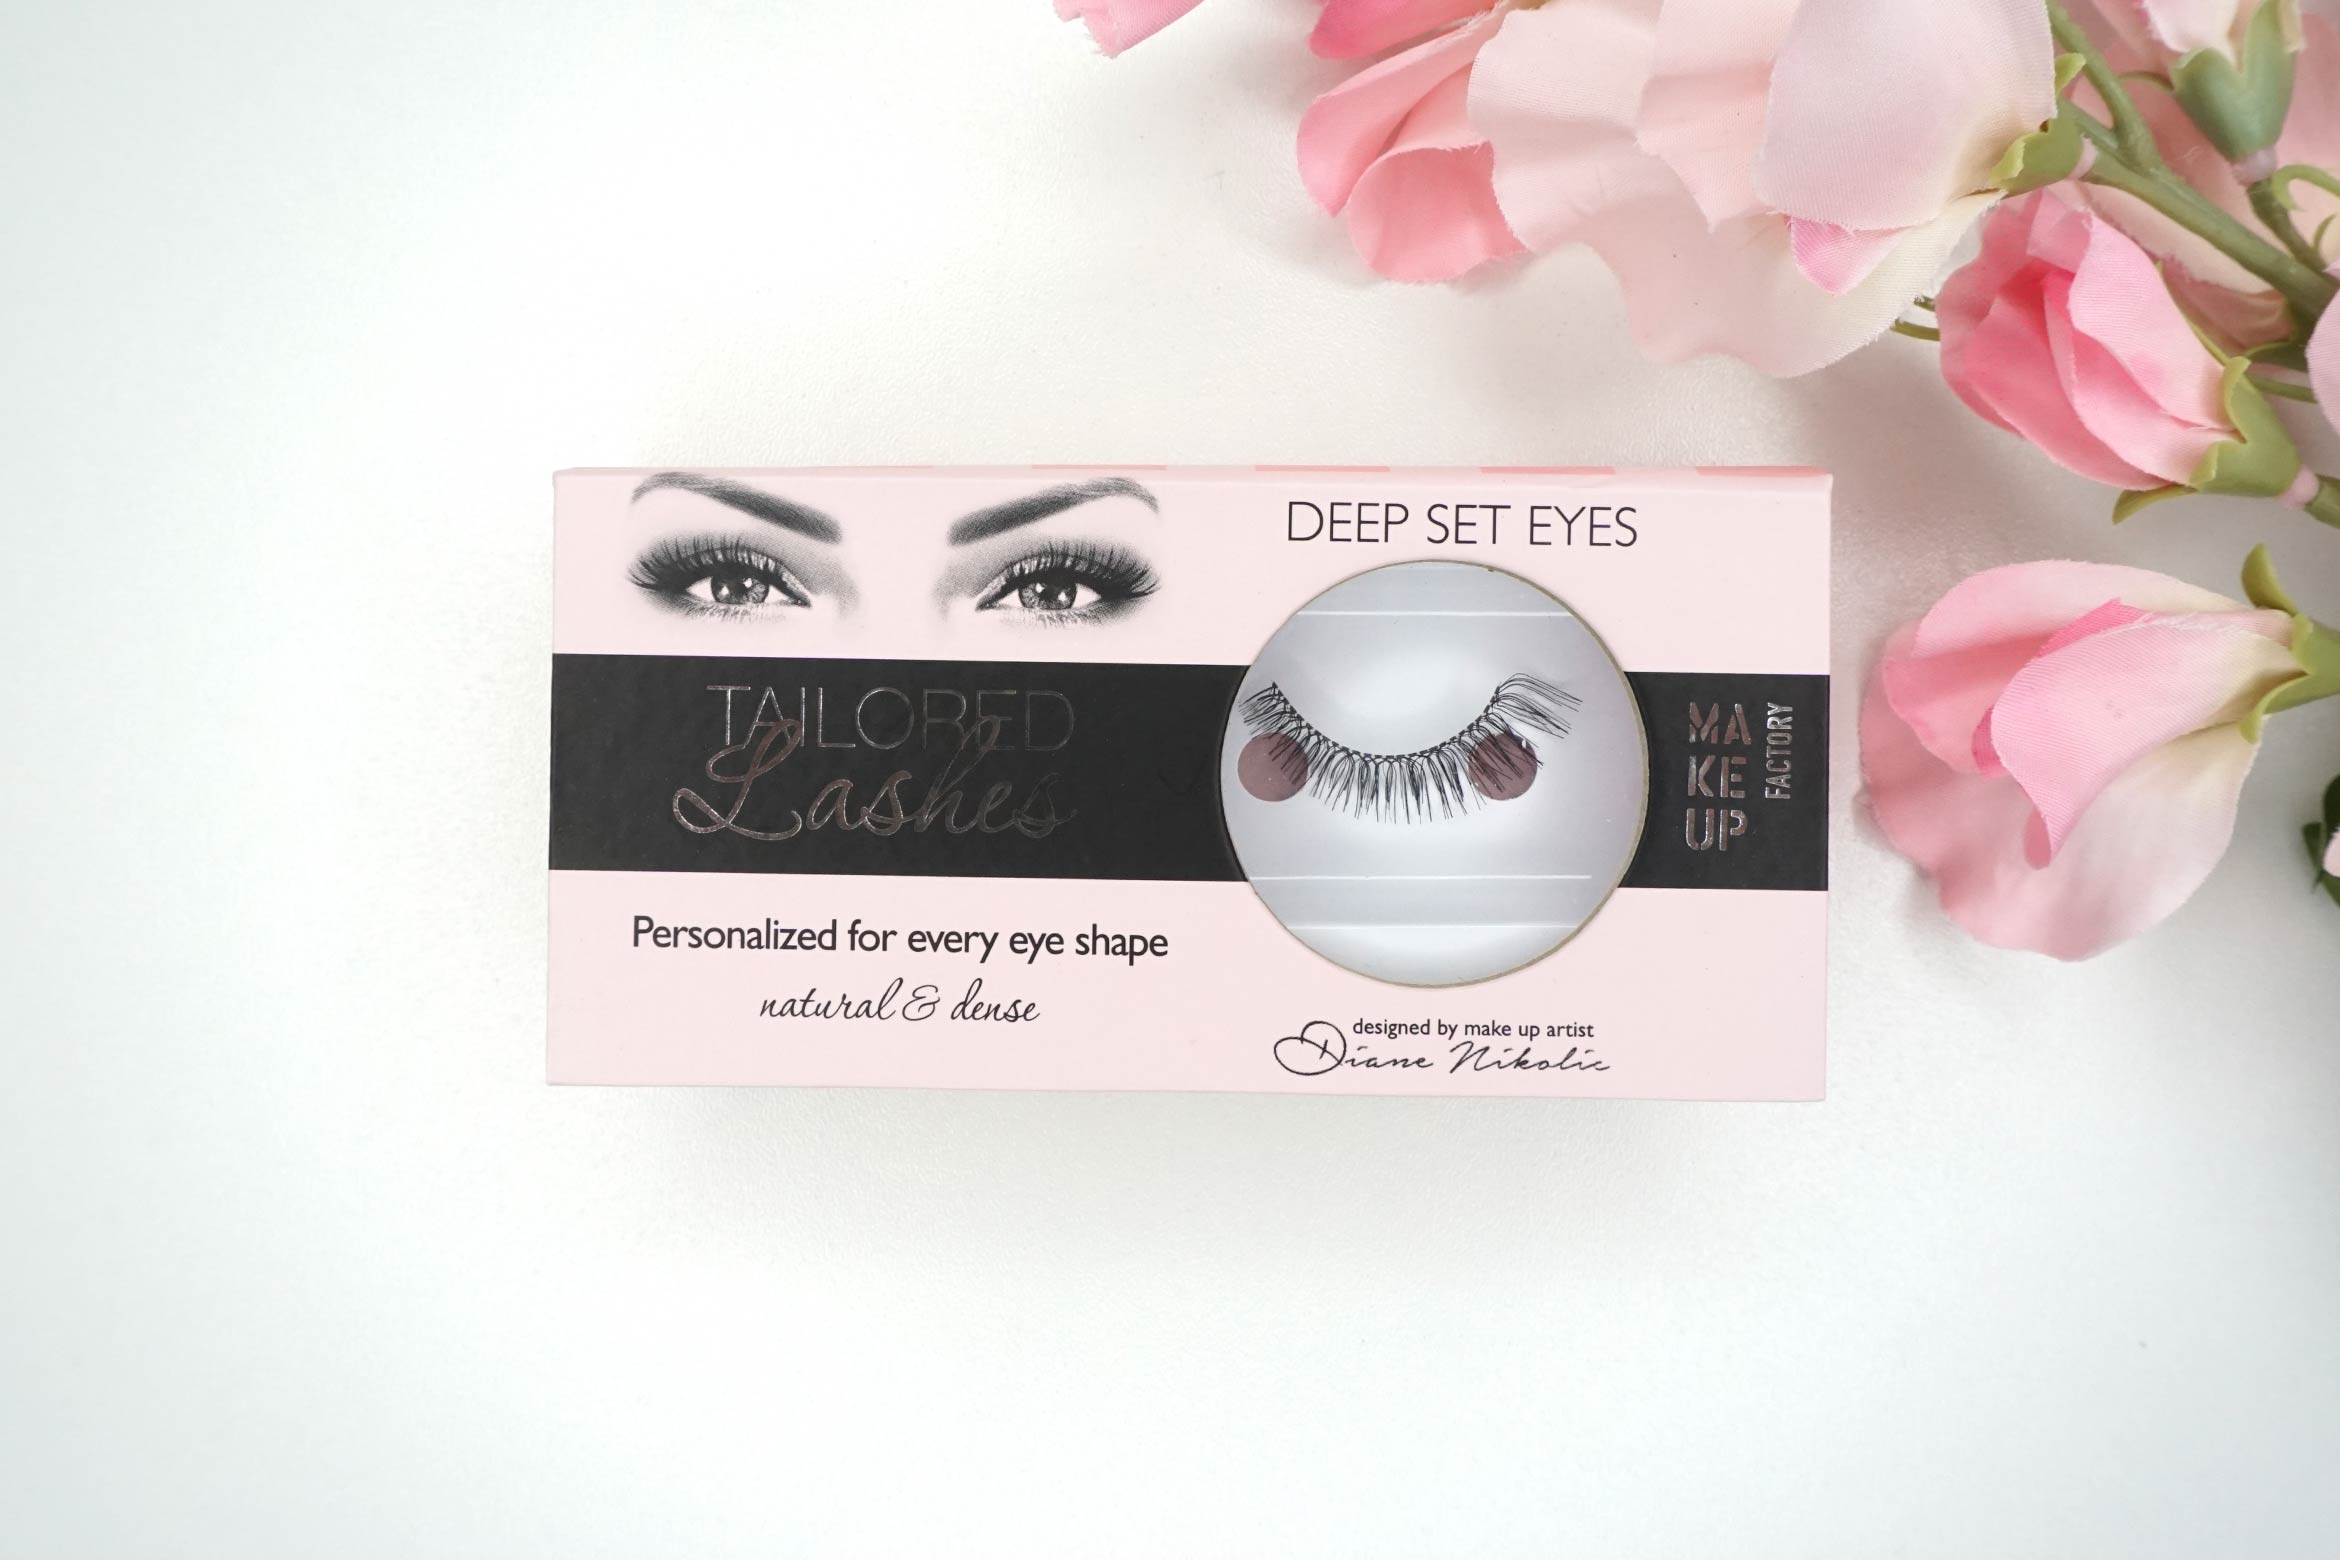 make-up-factory-tailored-lashes-review-deep-set-eyes